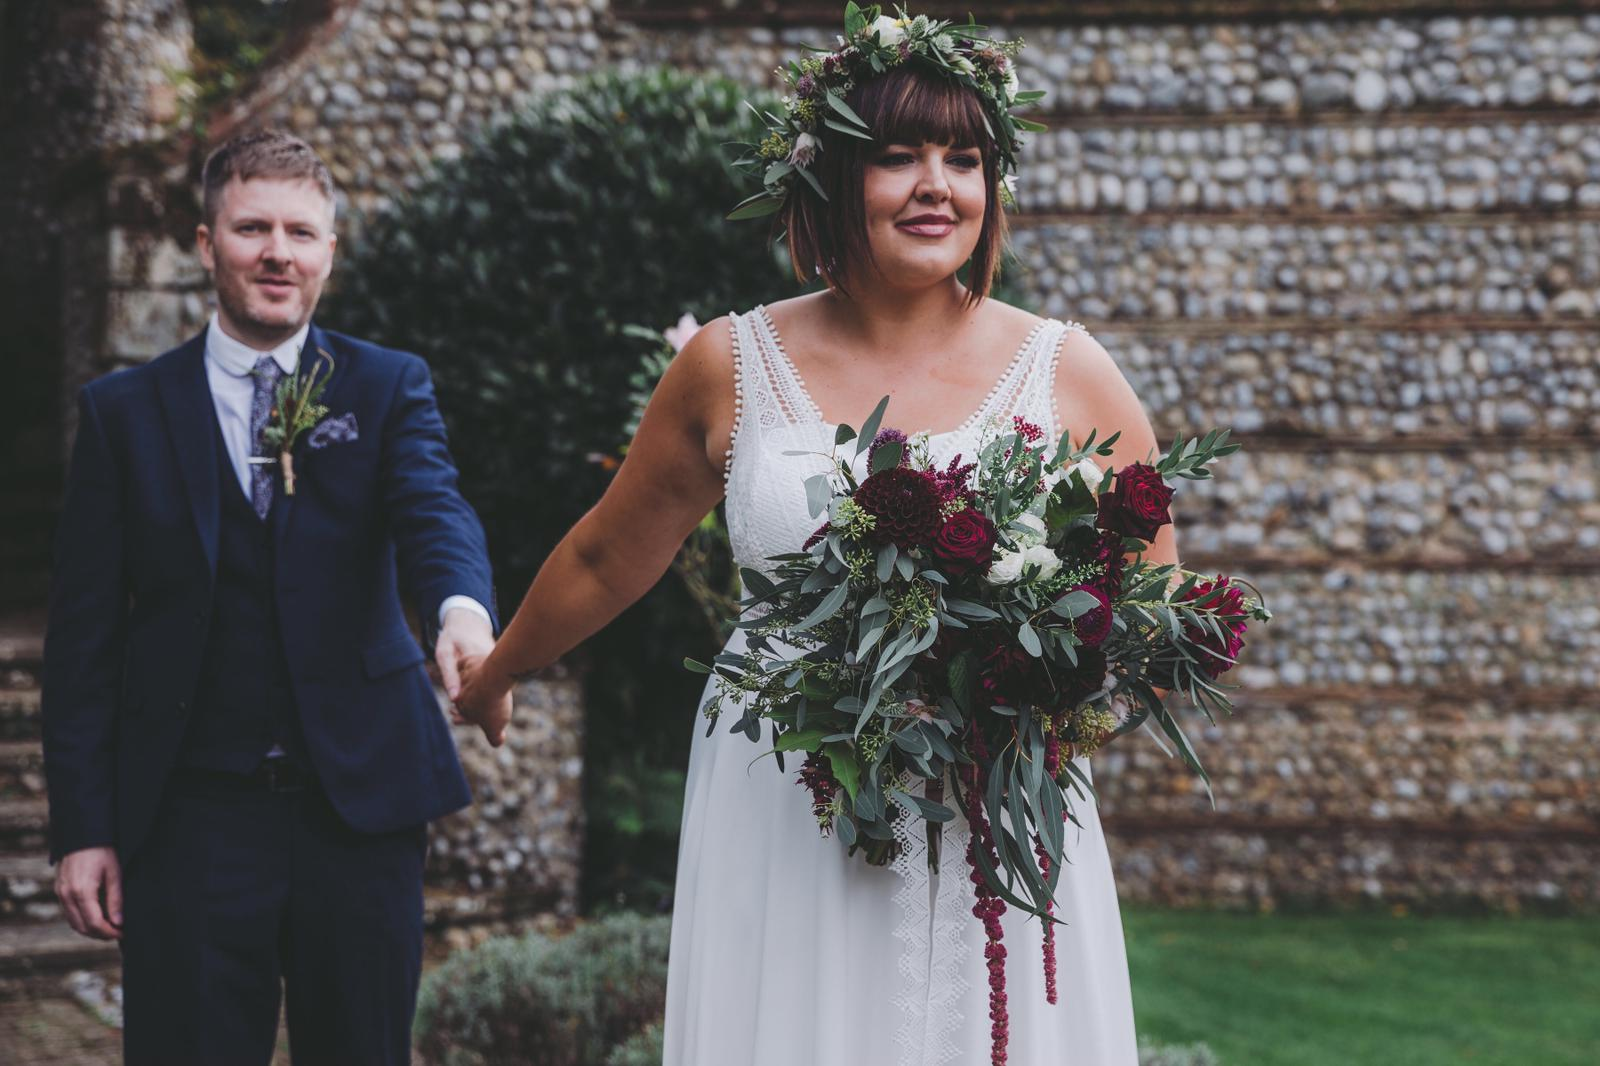 Real bride wearing Honey Bear by Rembo Styling from Cicily Bridal